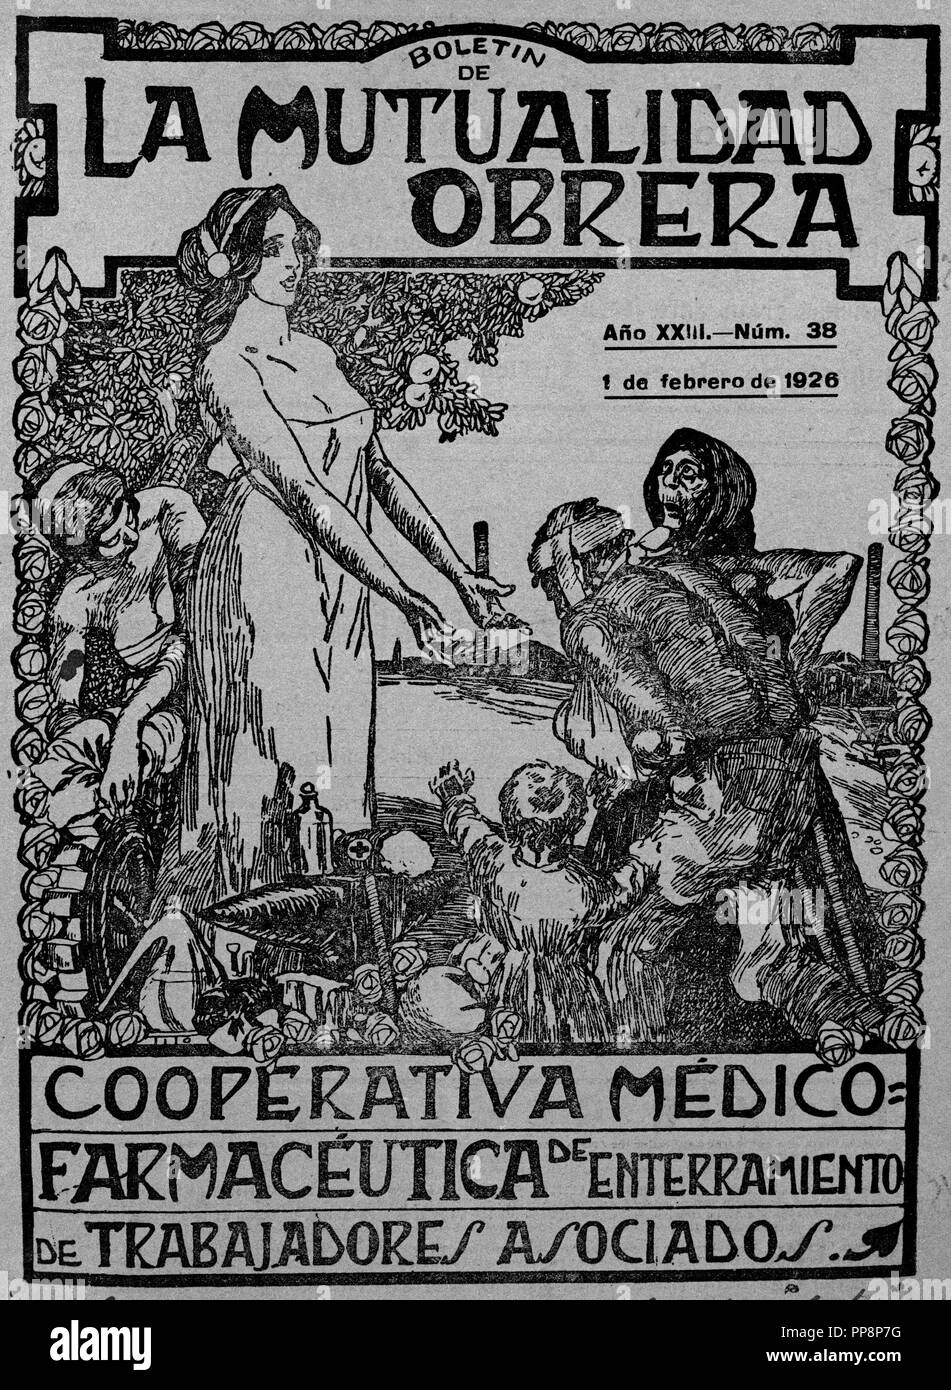 PHARMACEUTICAL MEDICAL COOPERATIVE OF BURIAL OF ASSOCIATED WORKERS, FEBRUARY 1st, 1926. Location: FUNDACION PABLO IGLESIAS. MADRID. SPAIN. - Stock Image